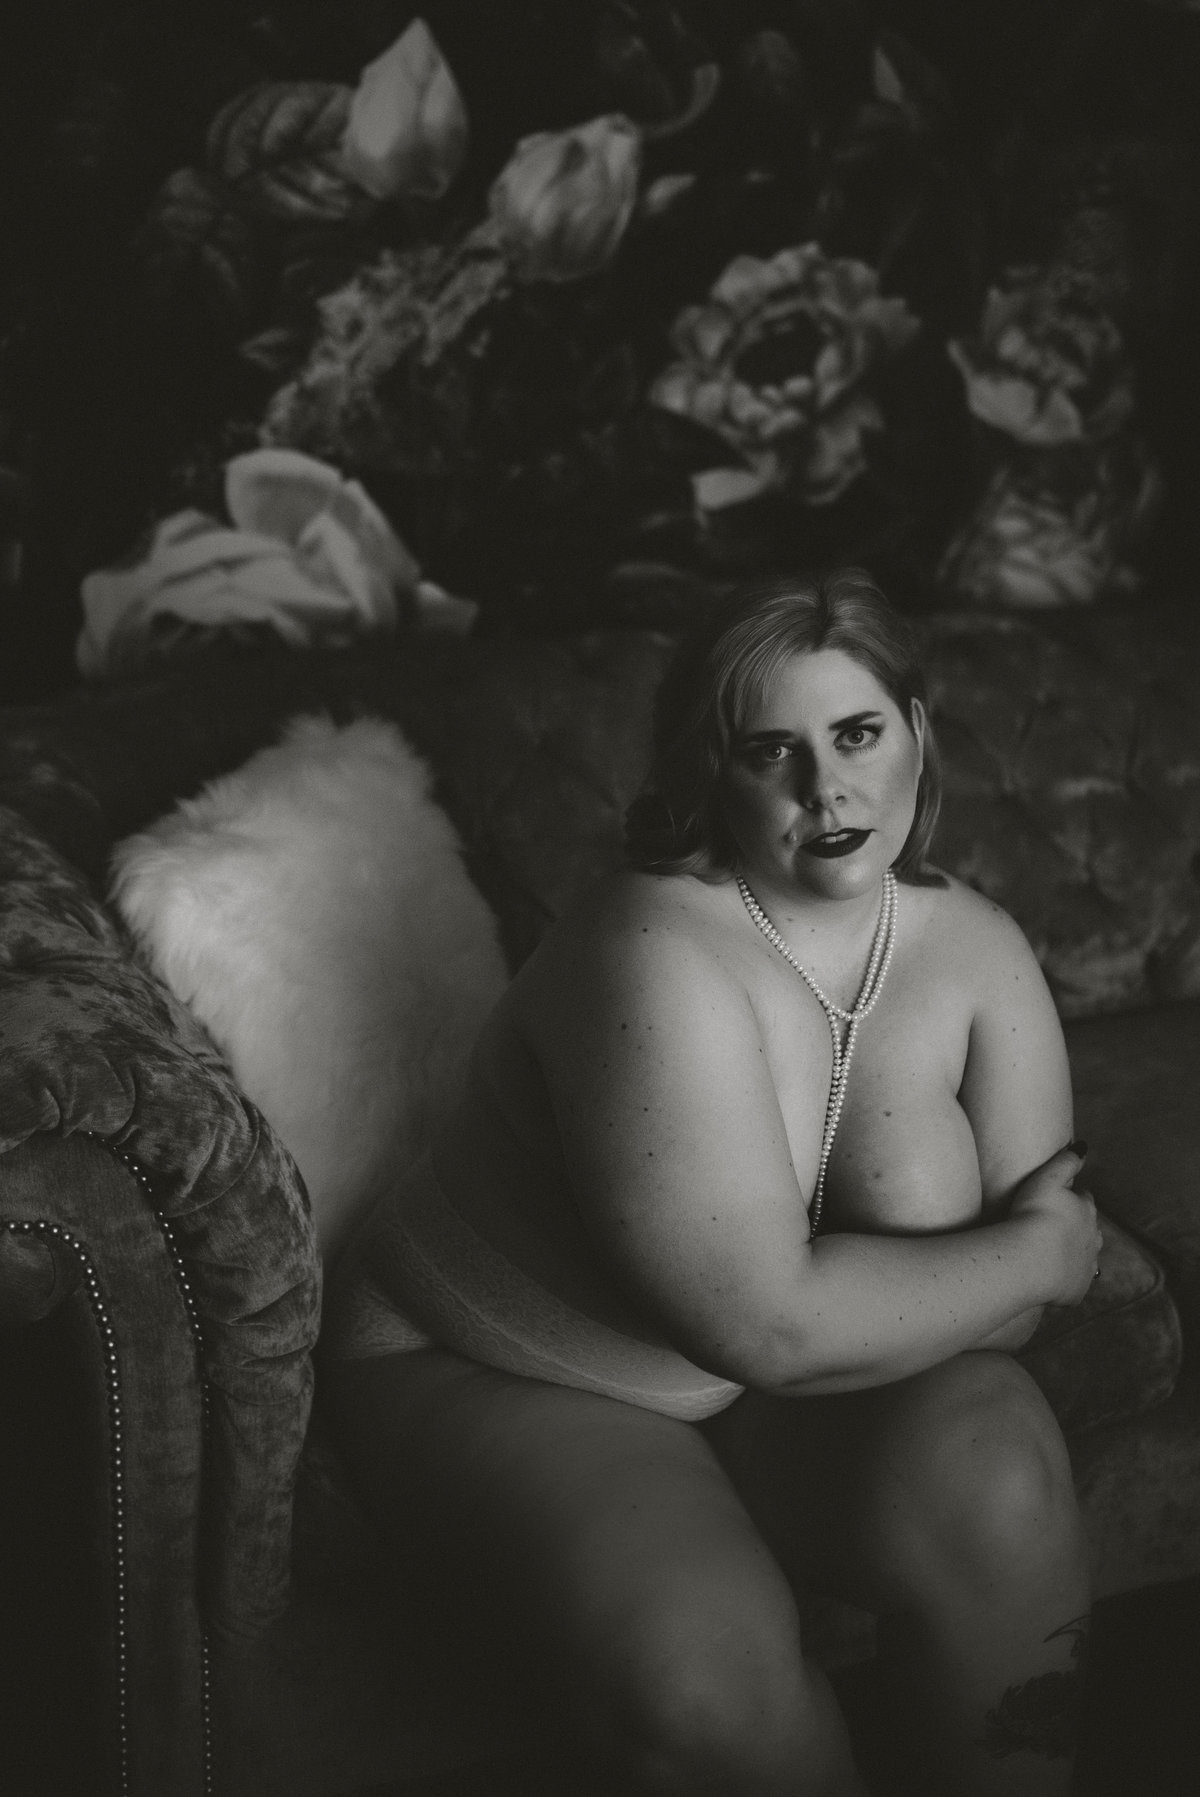 erika-gayle-photography-regina-boudoir-intimate-portrait-photographer-5